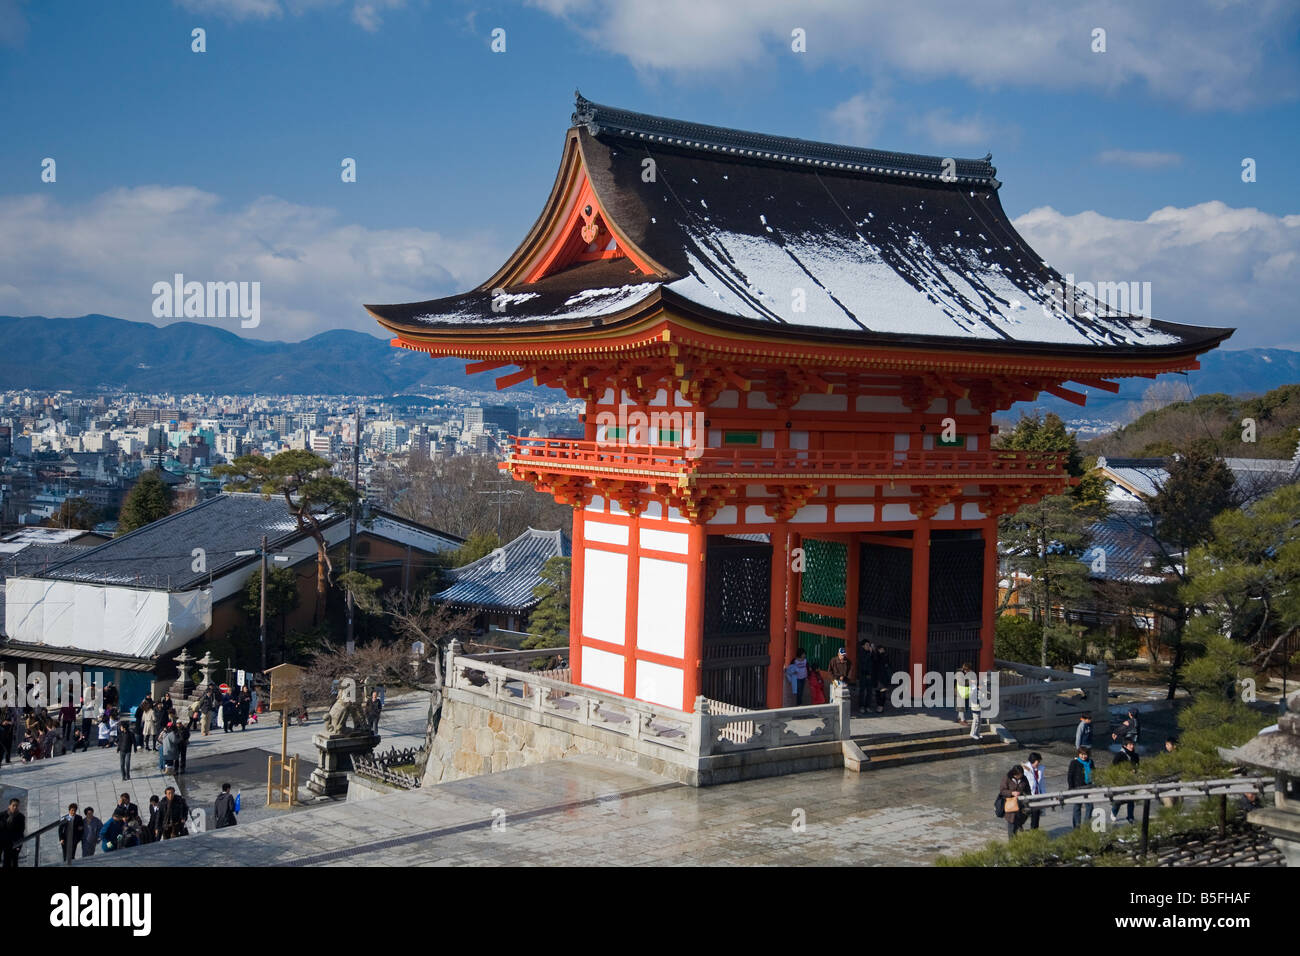 Pagoda Roof High Resolution Stock Photography And Images Alamy